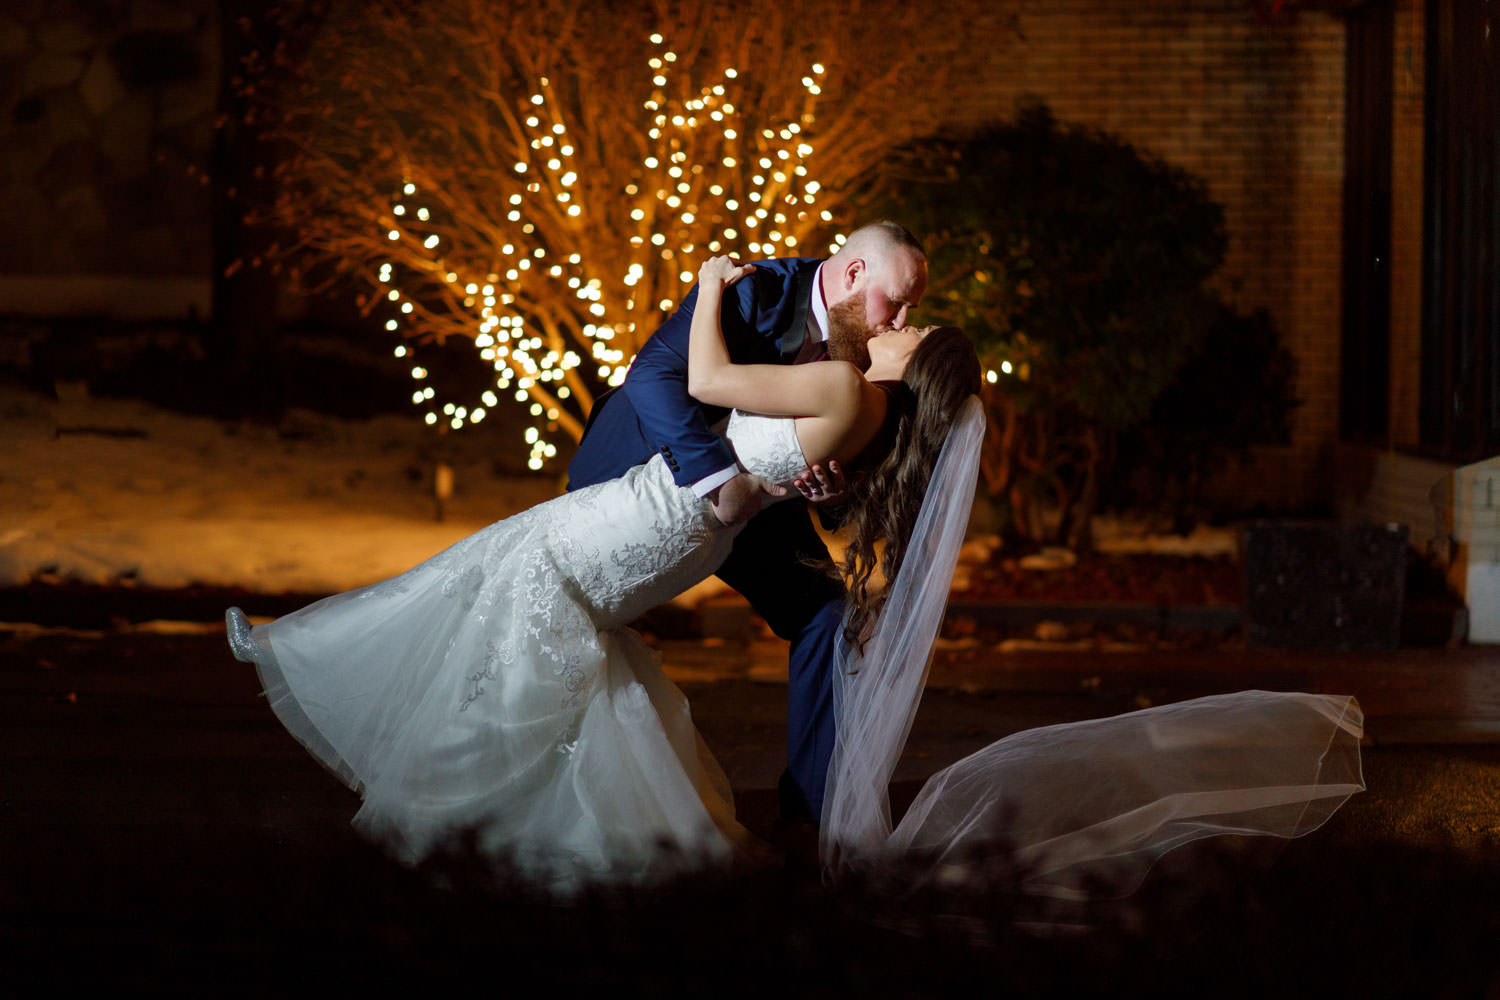 Bride dipping groom with twinkle lights in background